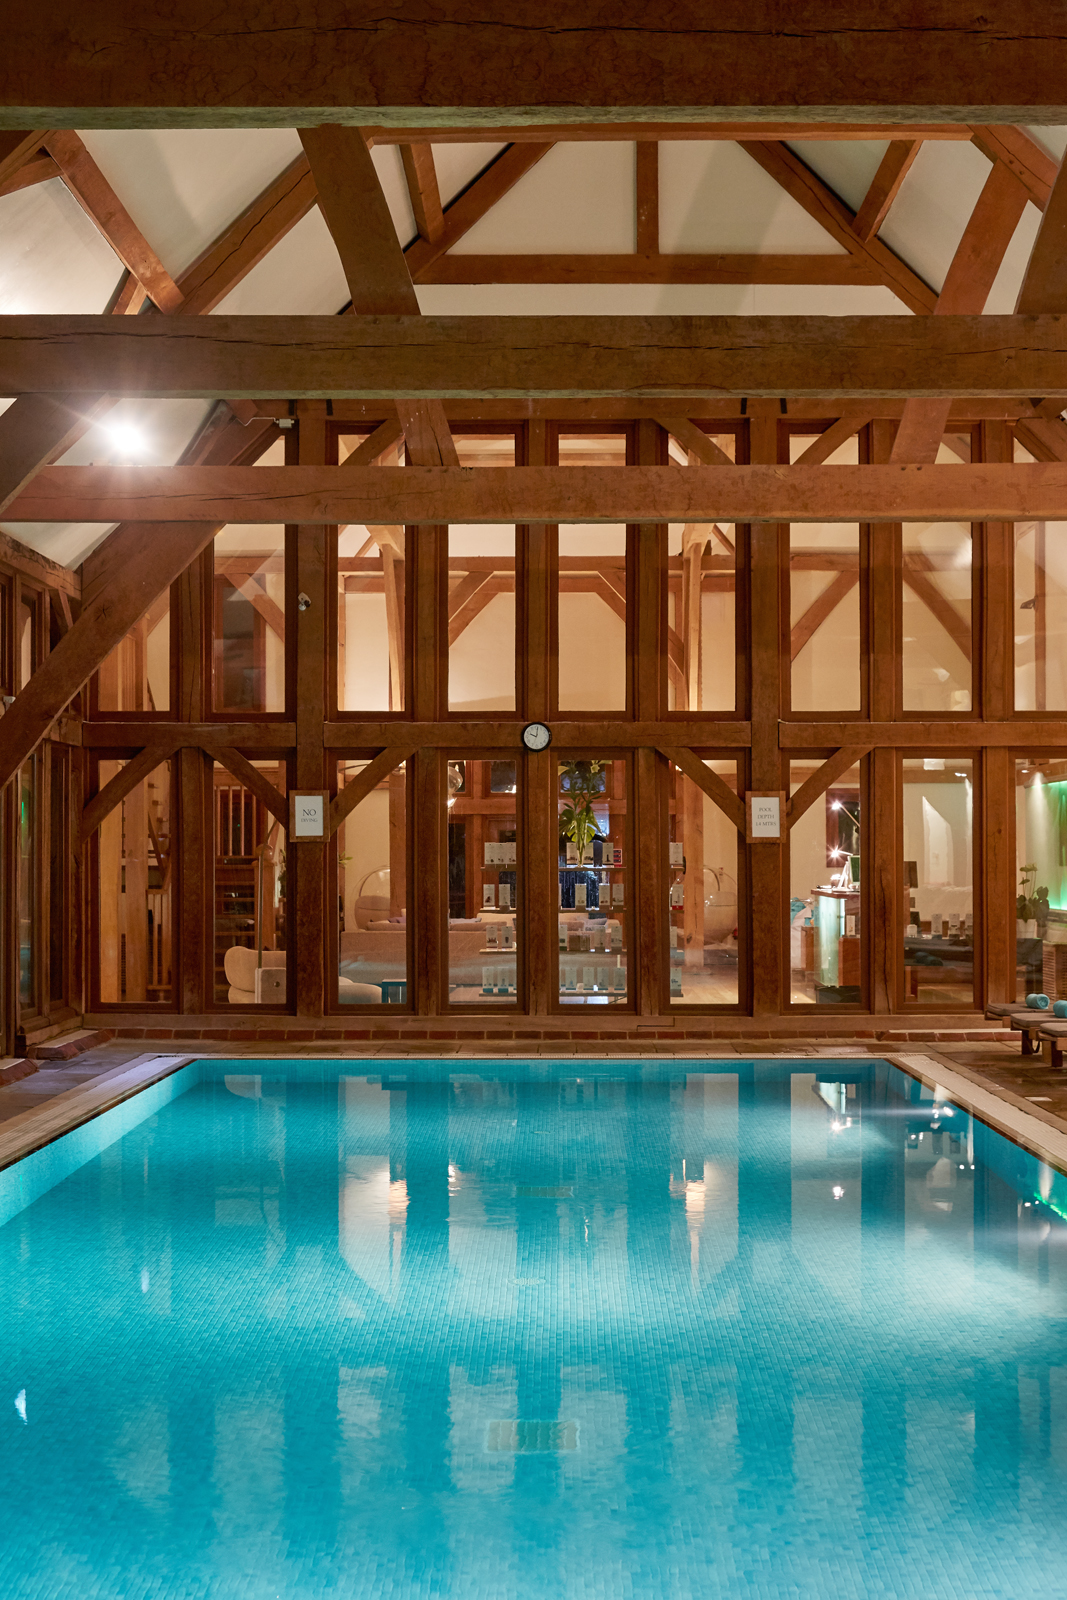 Bailiffscourt Spa indoor pool